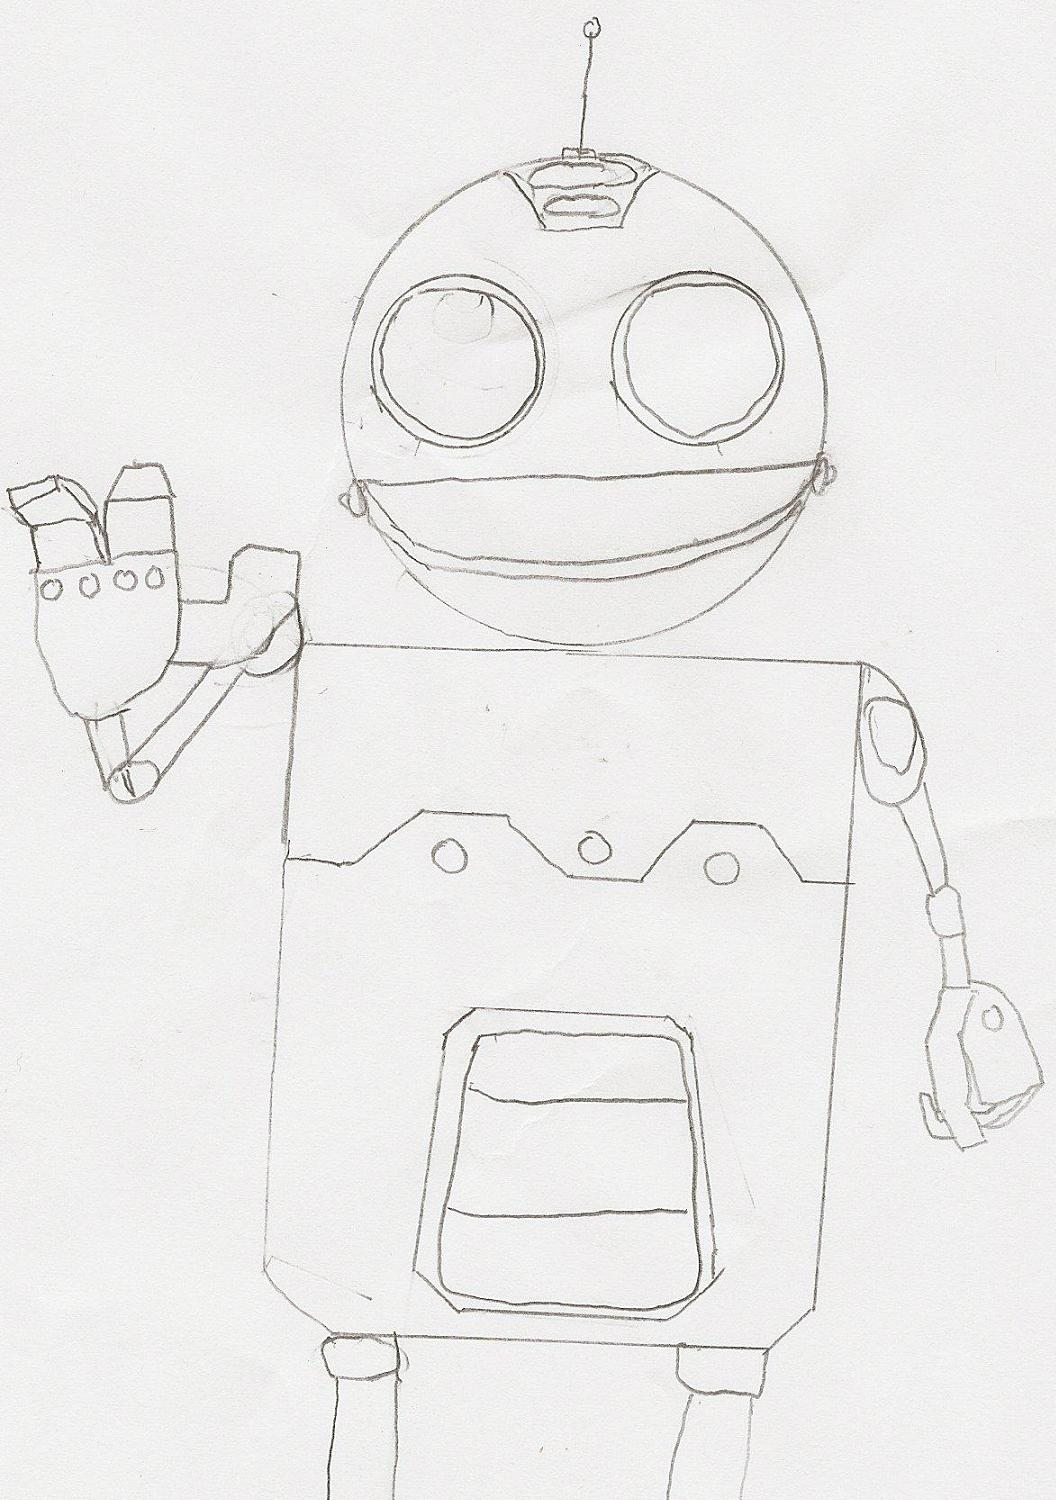 Clank (Uncolored) by Zzybranzzy